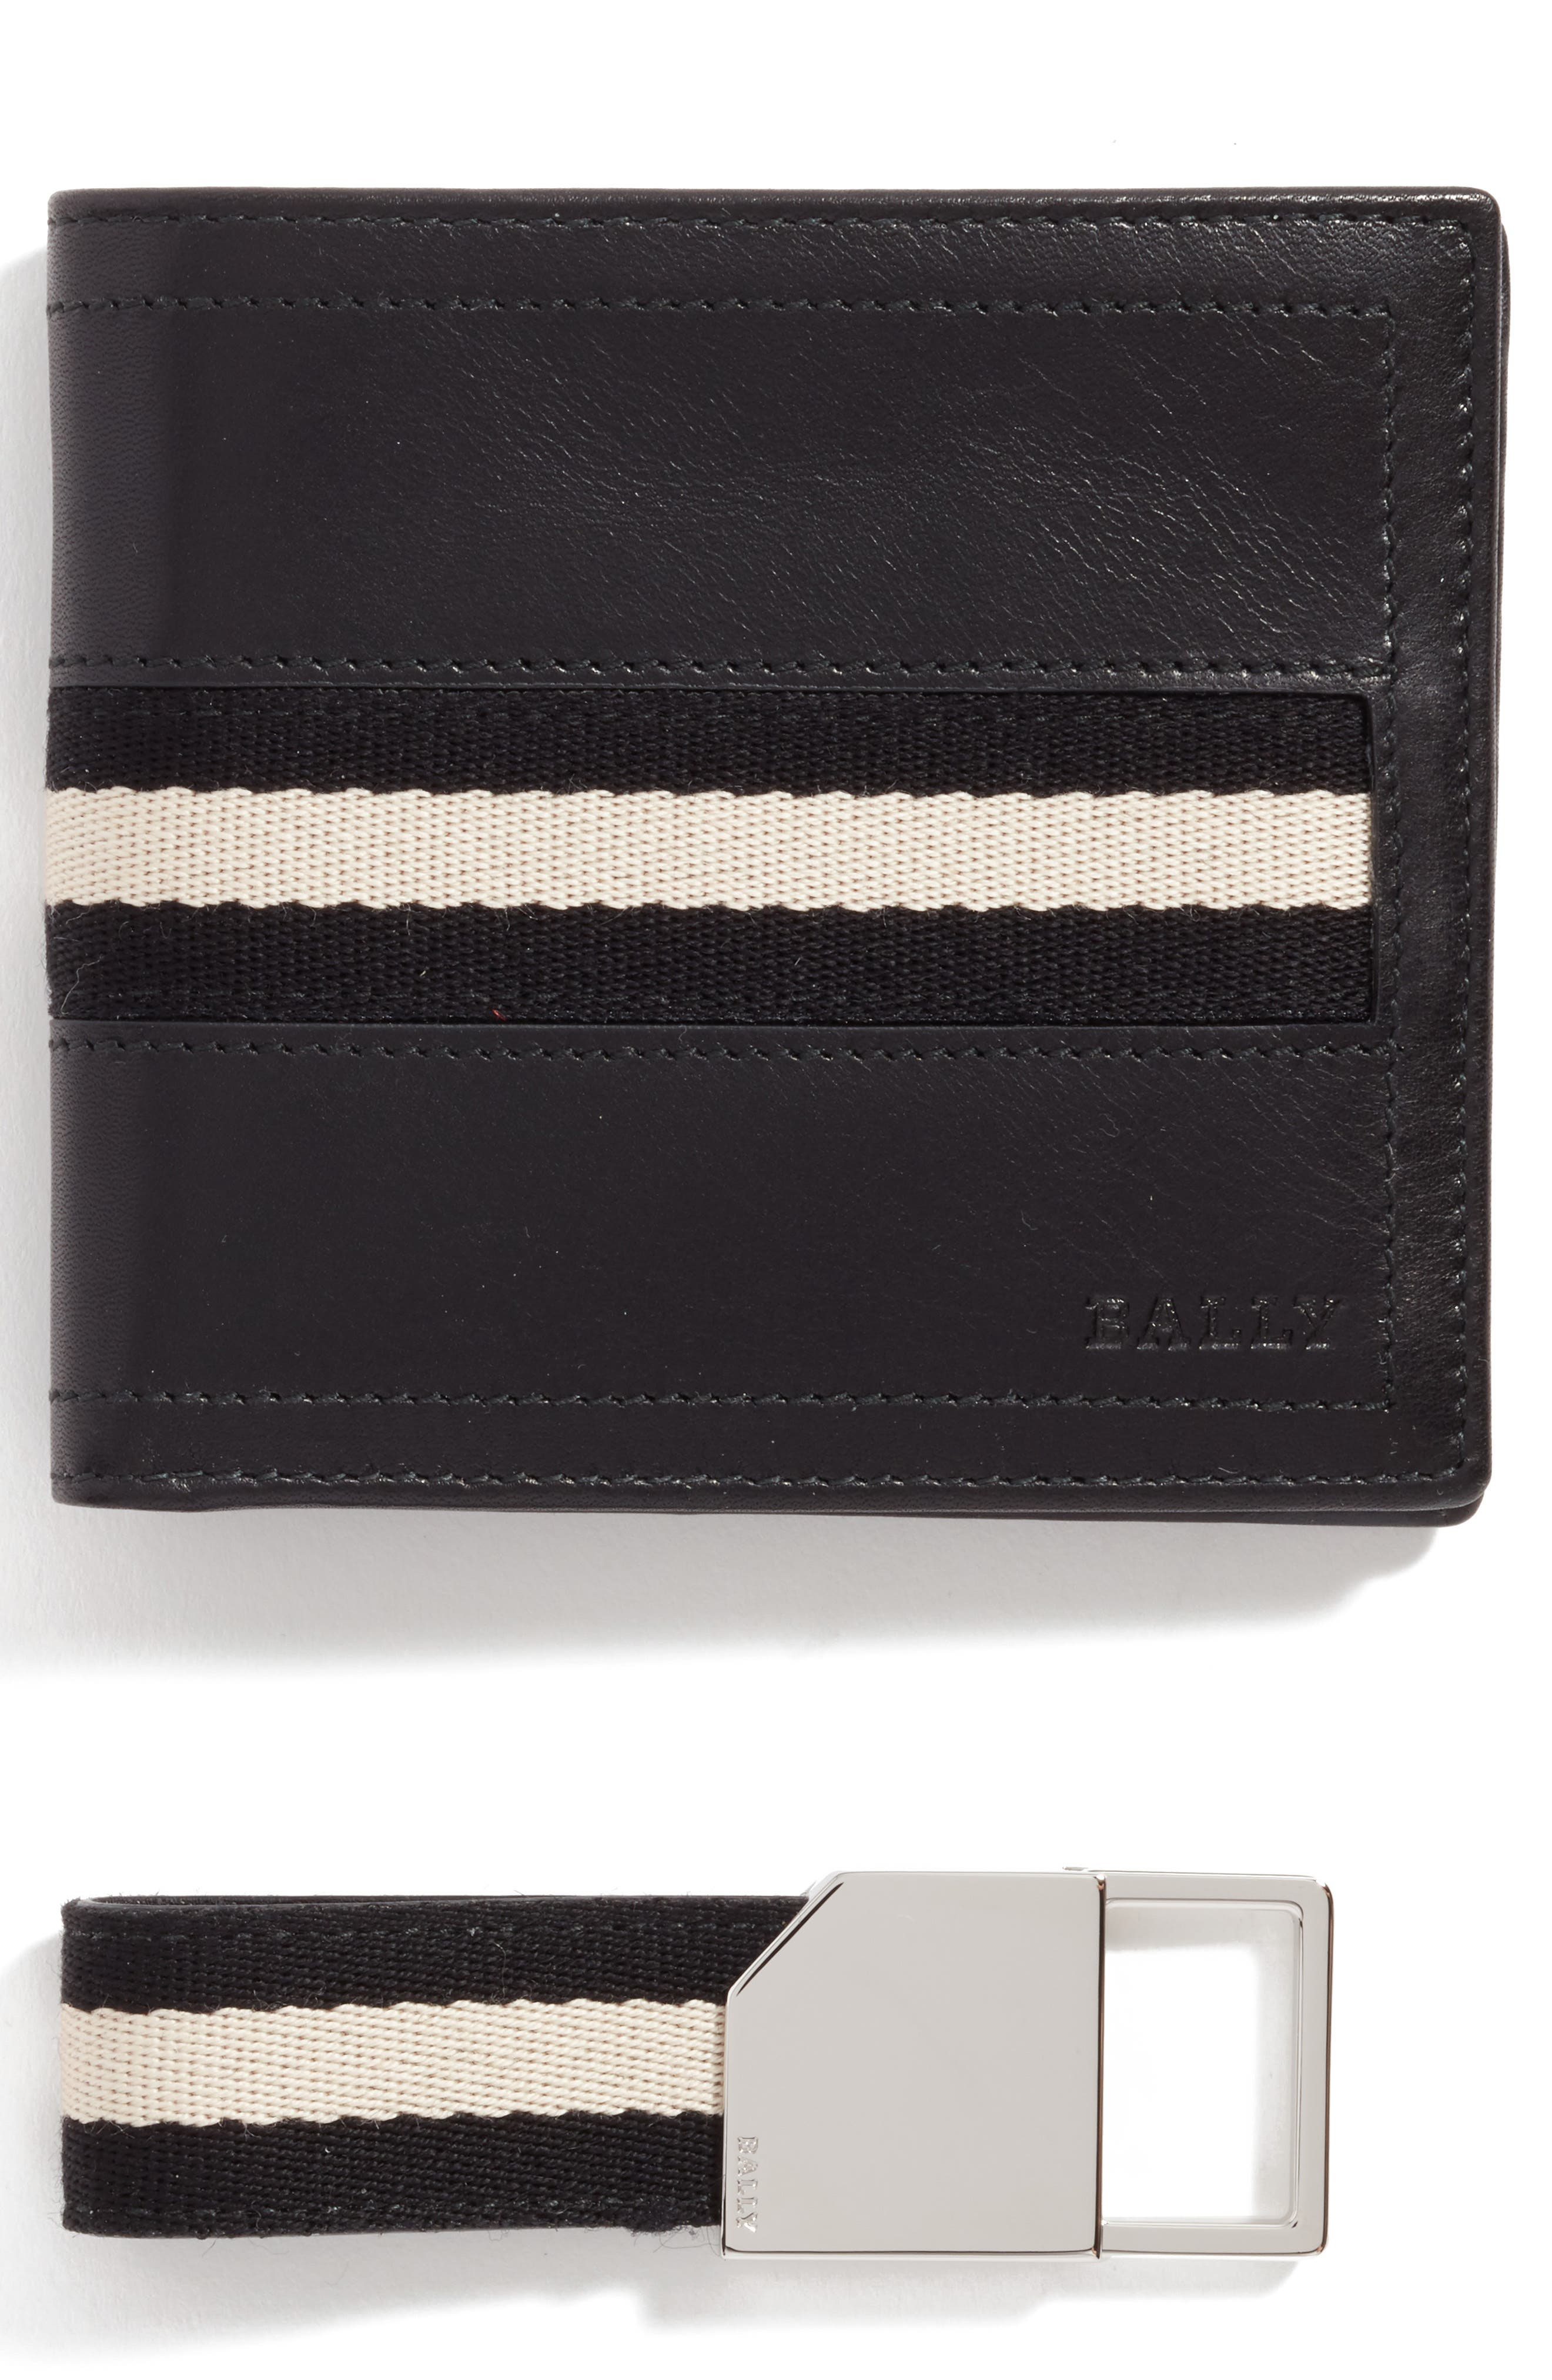 Bally Leather Wallet and Belt Gift Set